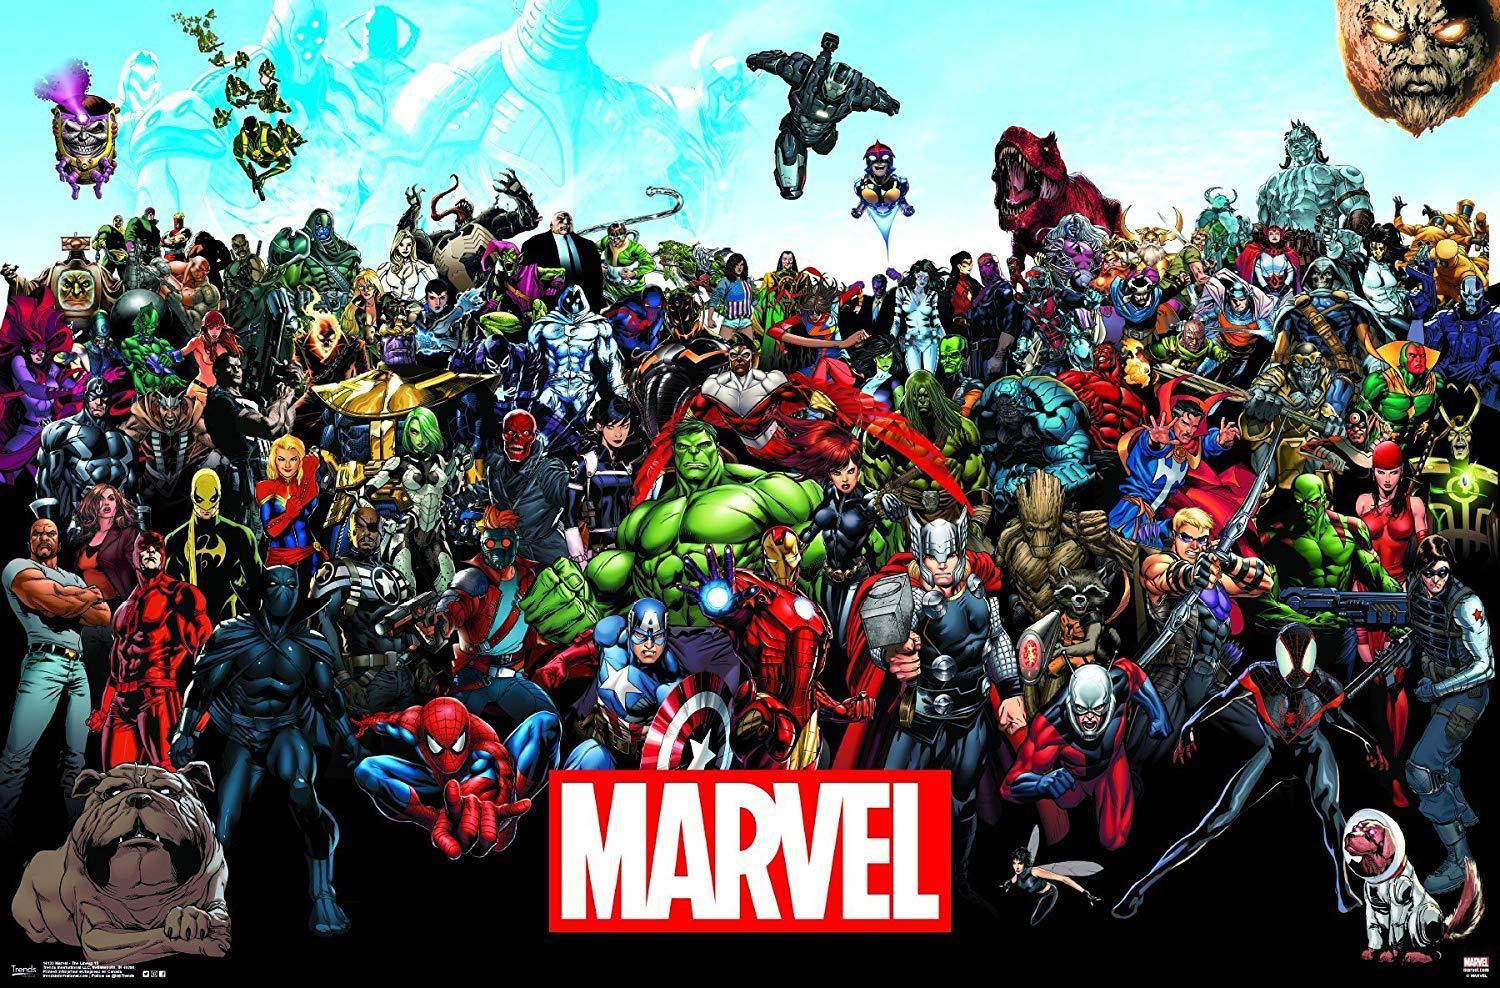 In what year did Stan Lee (the creator of Marvel) unfortunately pass away?